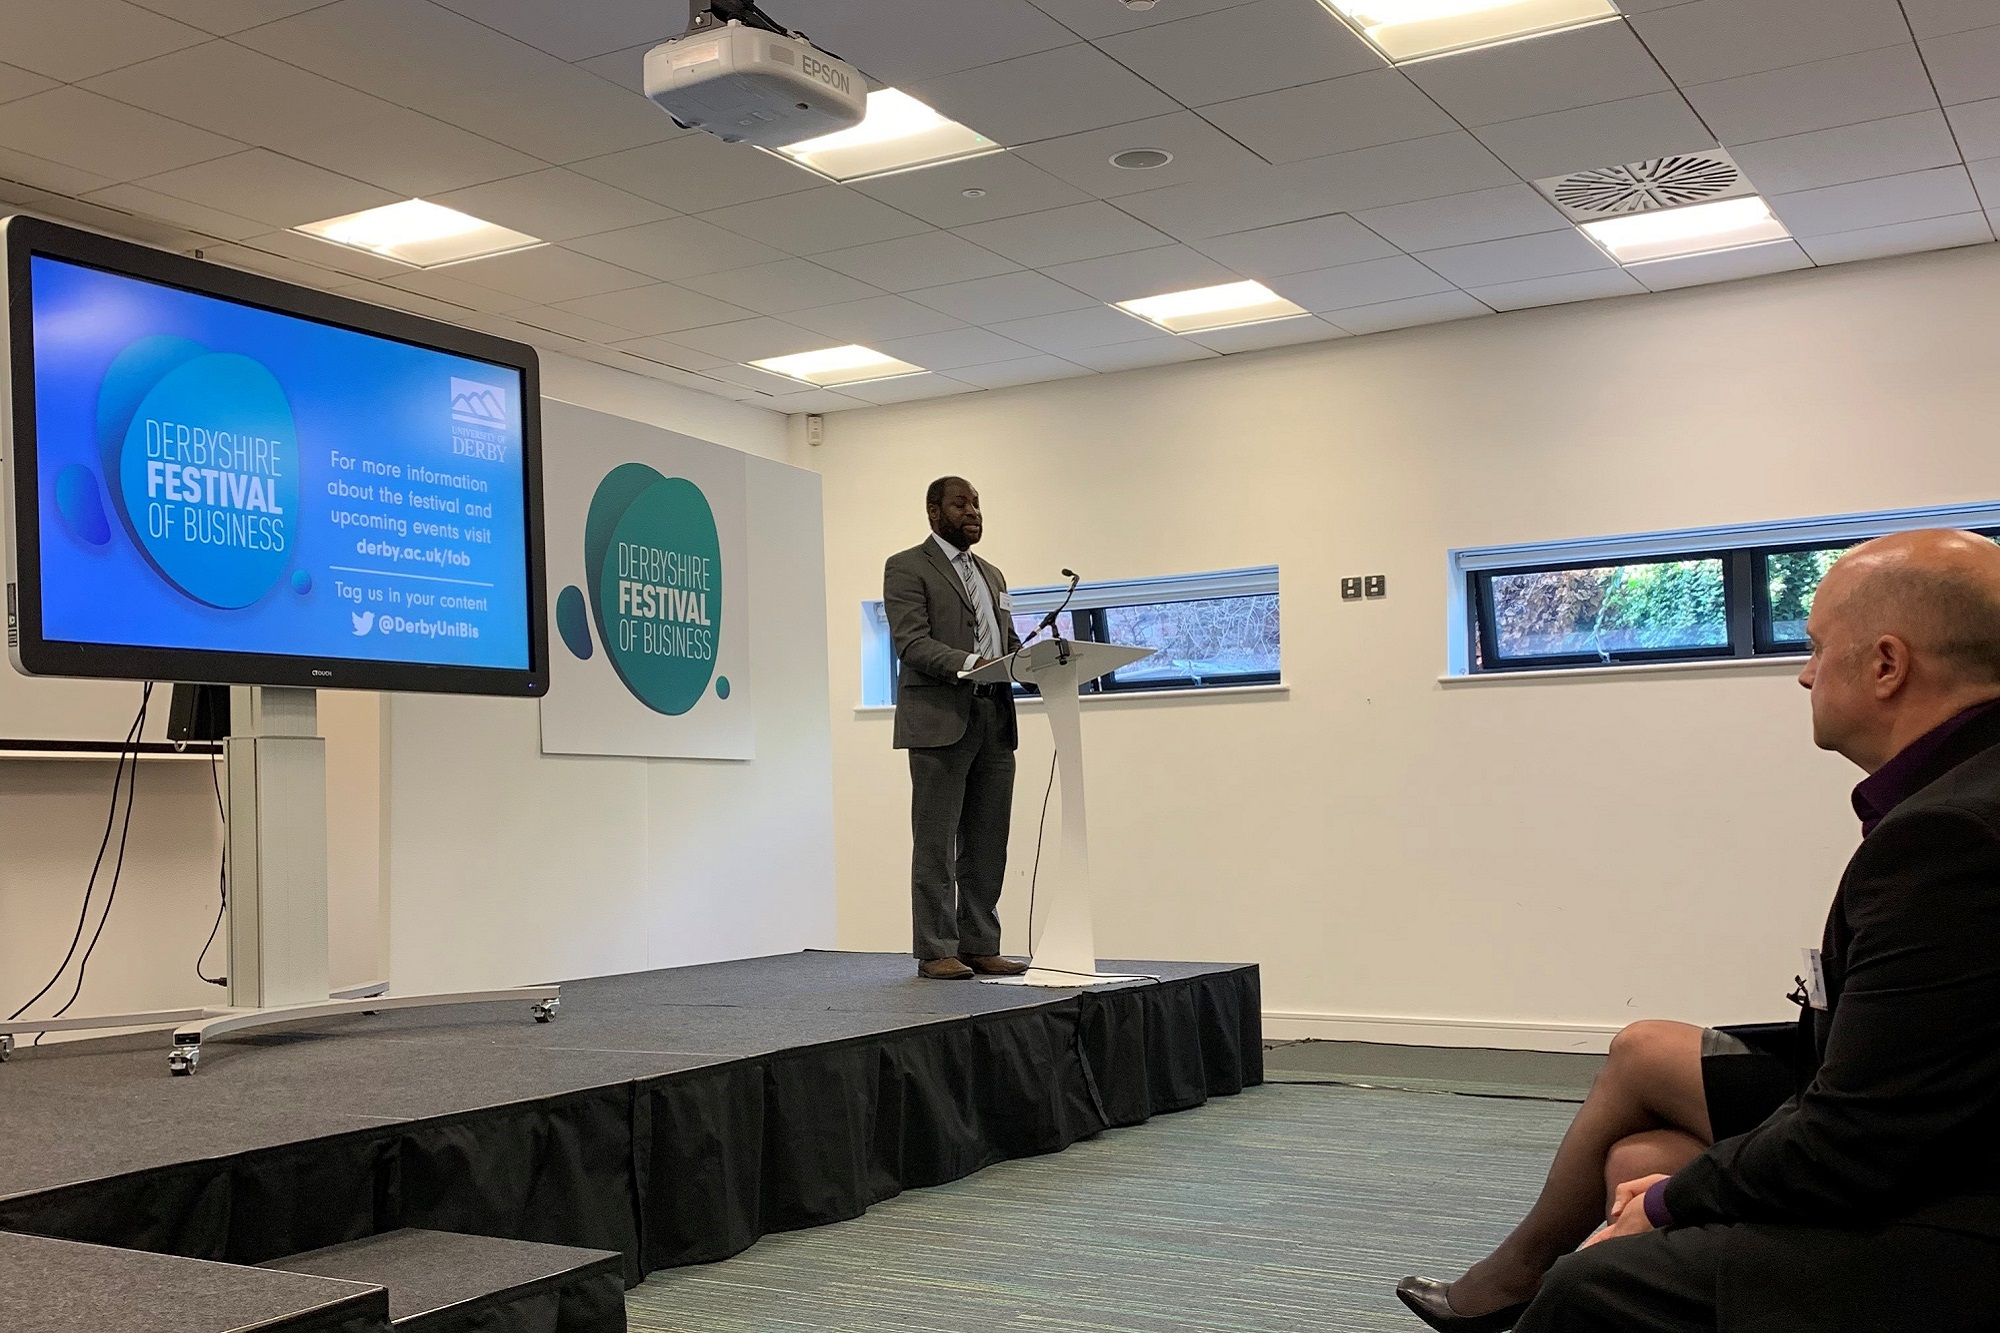 Professor Kamil Omoteso speaking at the Festival of Business launch